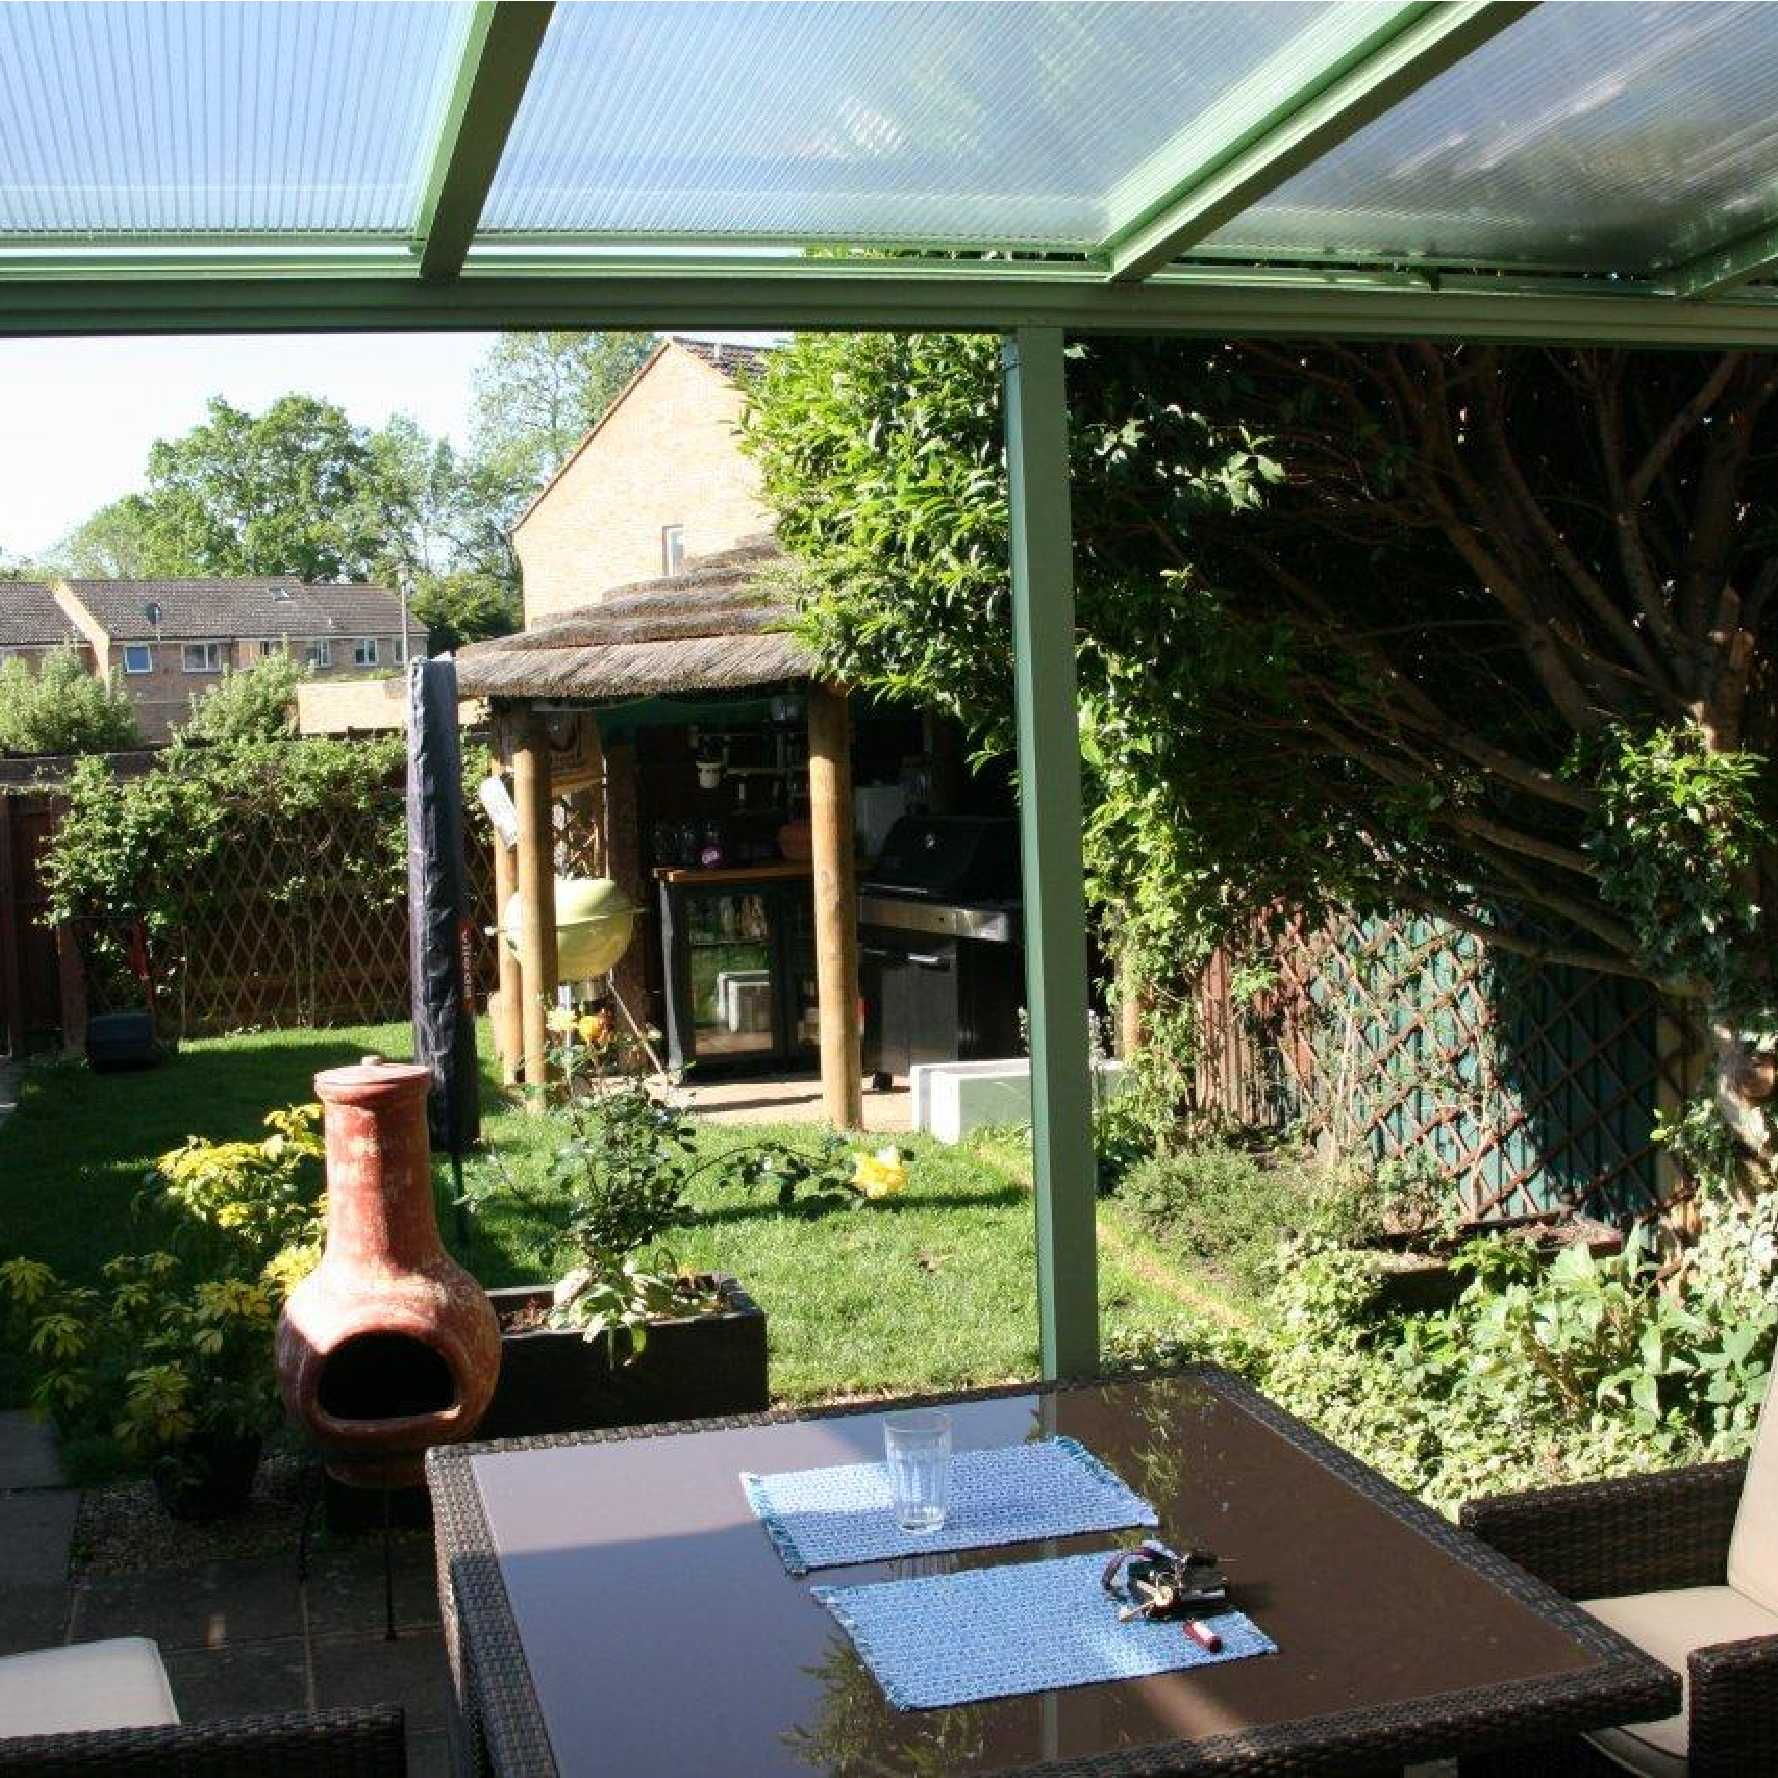 Affordable Omega Smart Lean-To Canopy with 16mm Polycarbonate Glazing - 4.2m (W) x 3.0m (P), (3) Supporting Posts